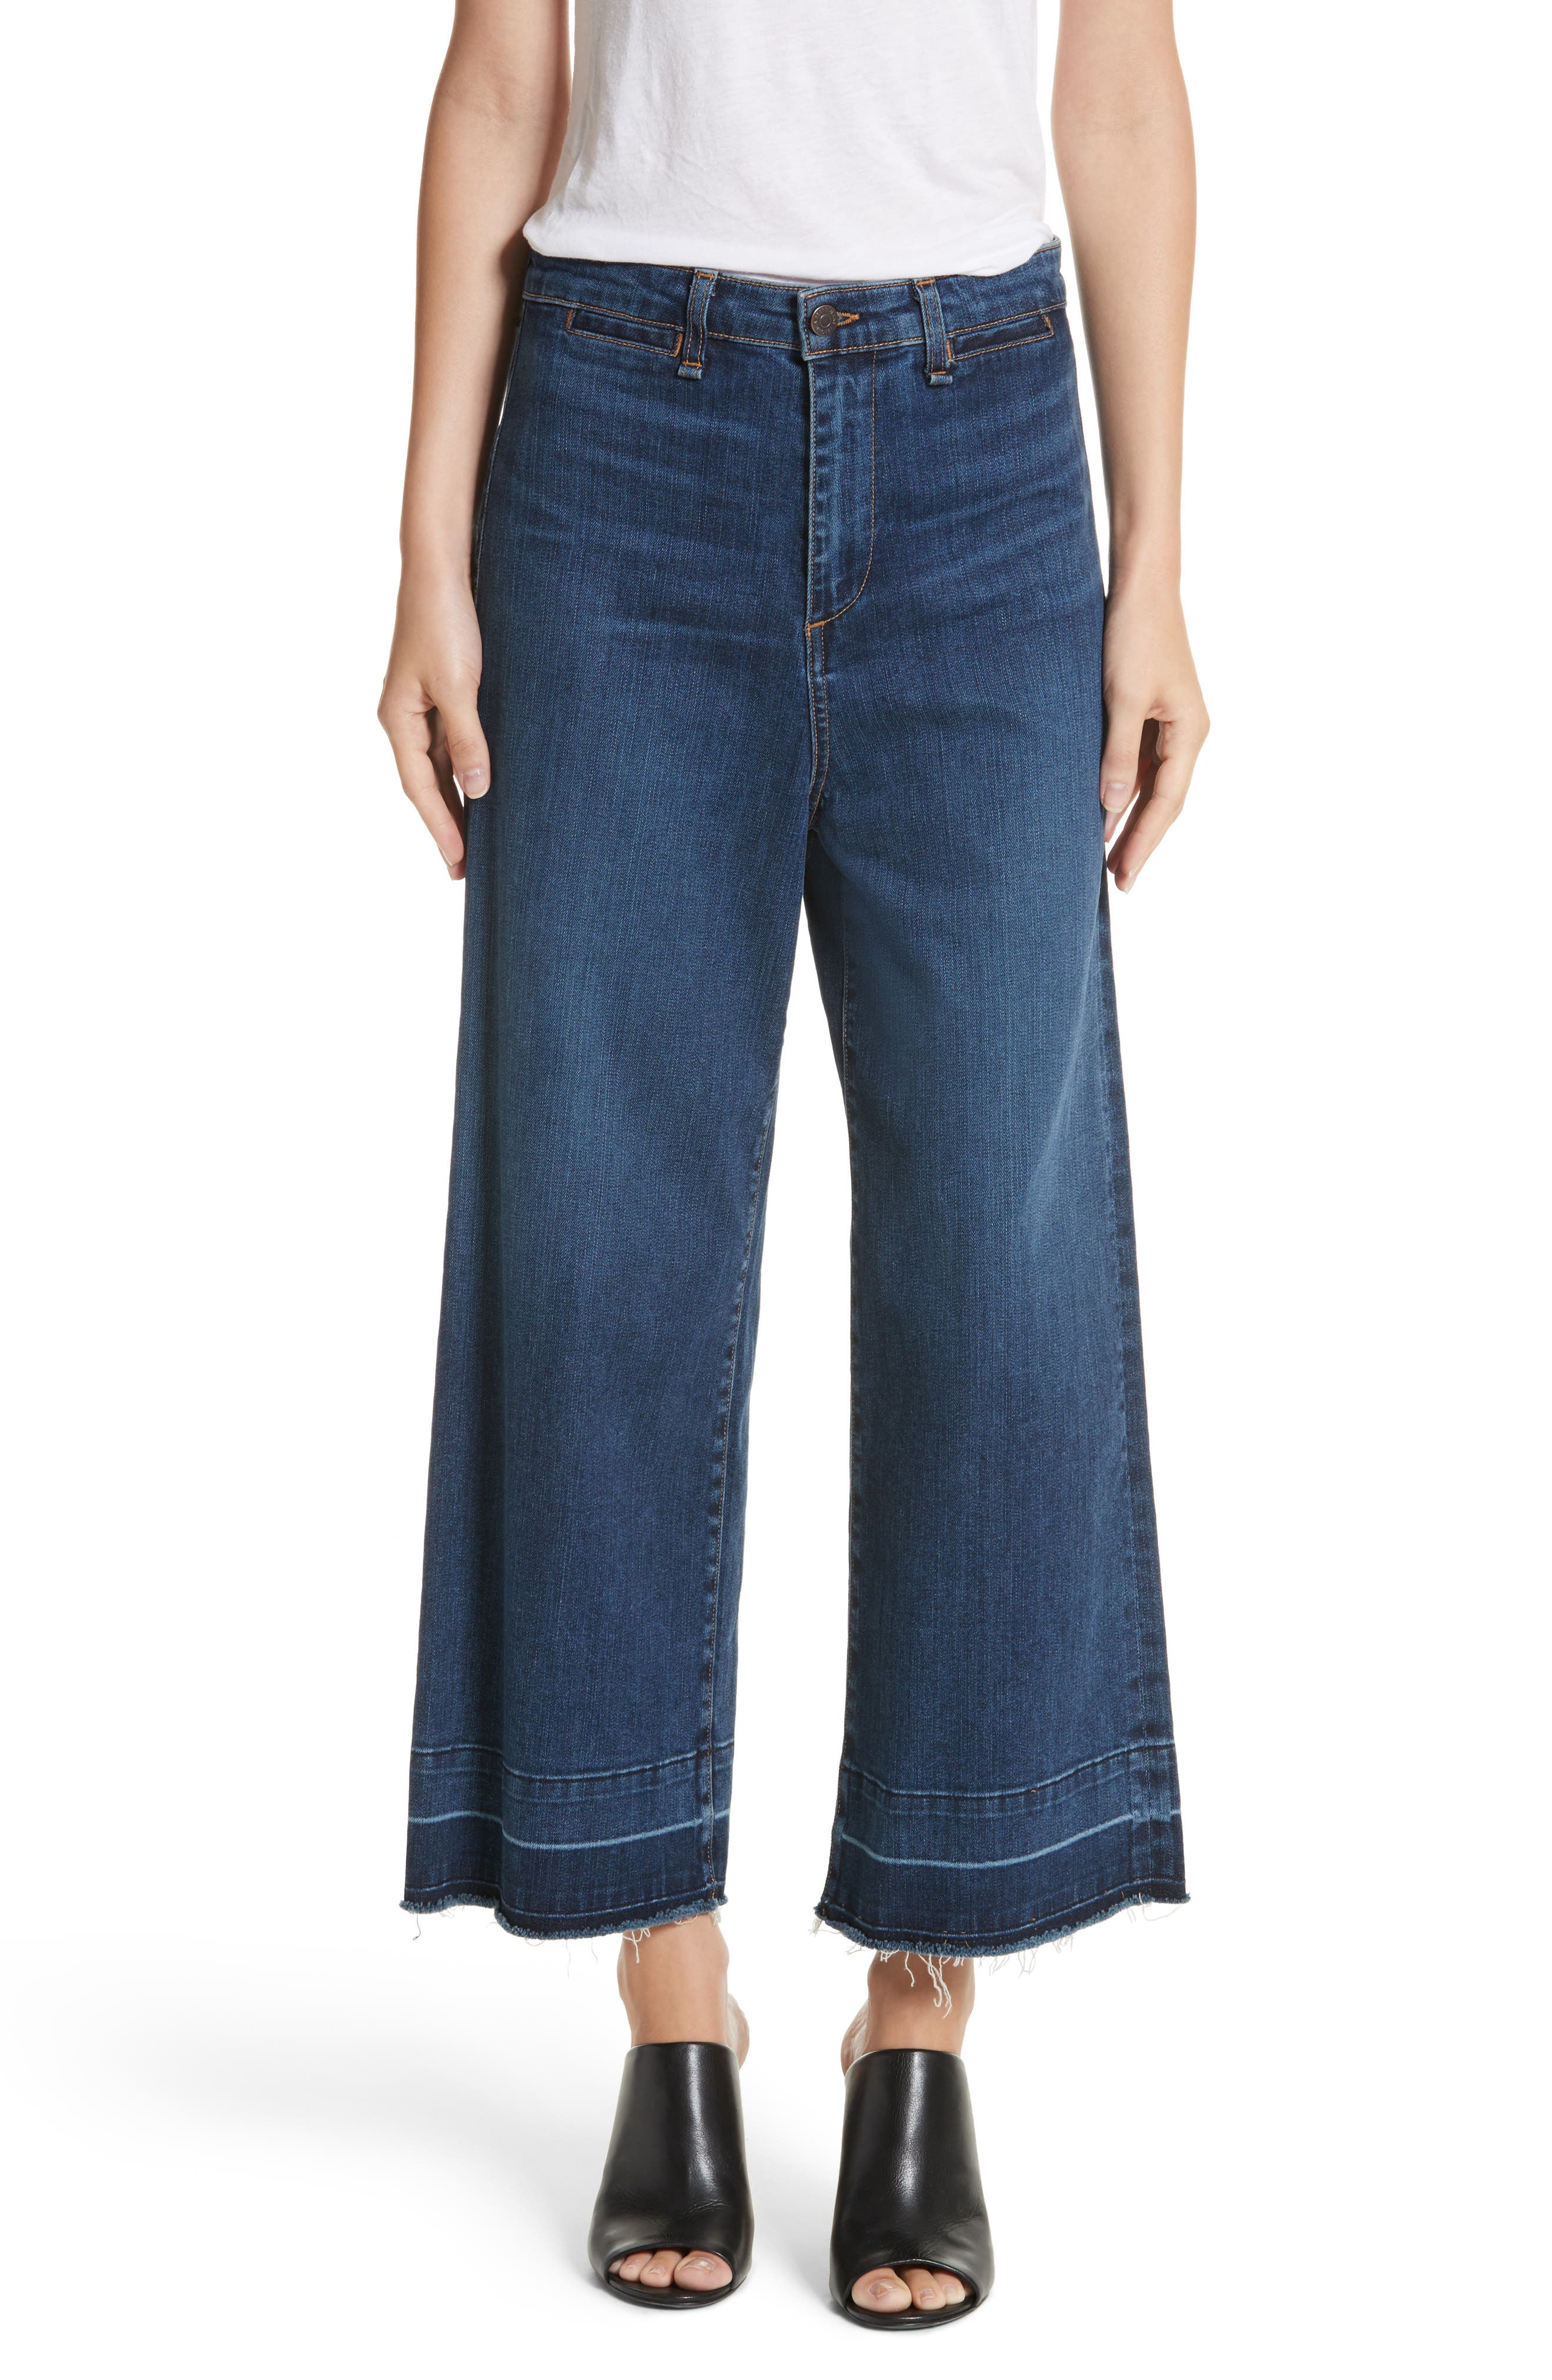 Veronica Beard Ali High Waist Gaucho Jeans